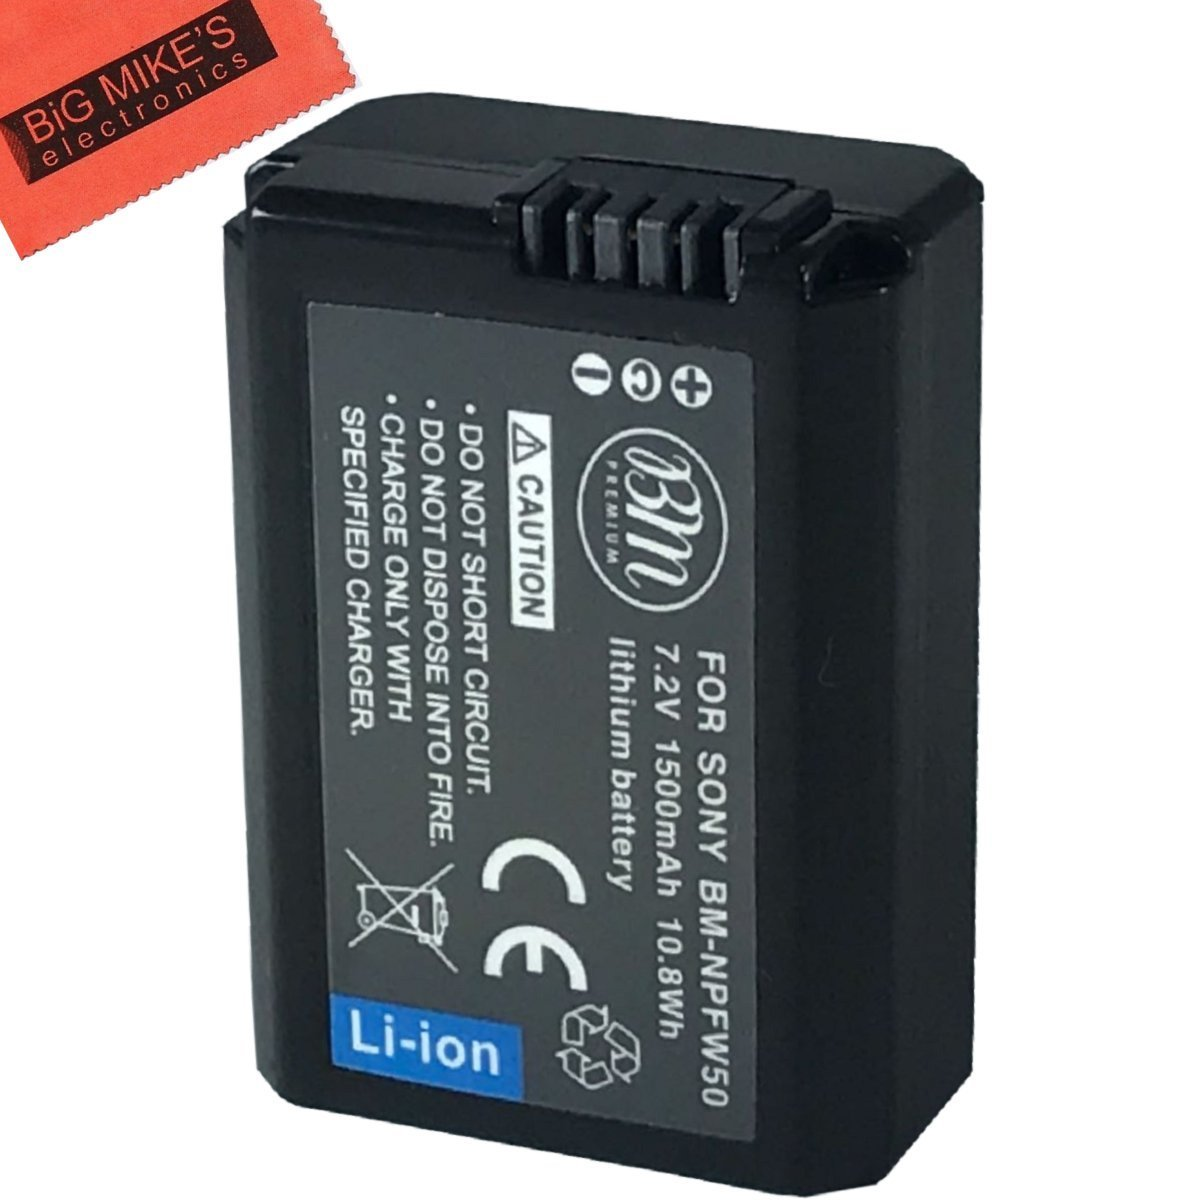 Bm Premium Np Fw50 Battery For Sony Alpha Digital Cameras Baterai Fuji W126 X A3 E1 Pro 1 T2 T20 With Packing